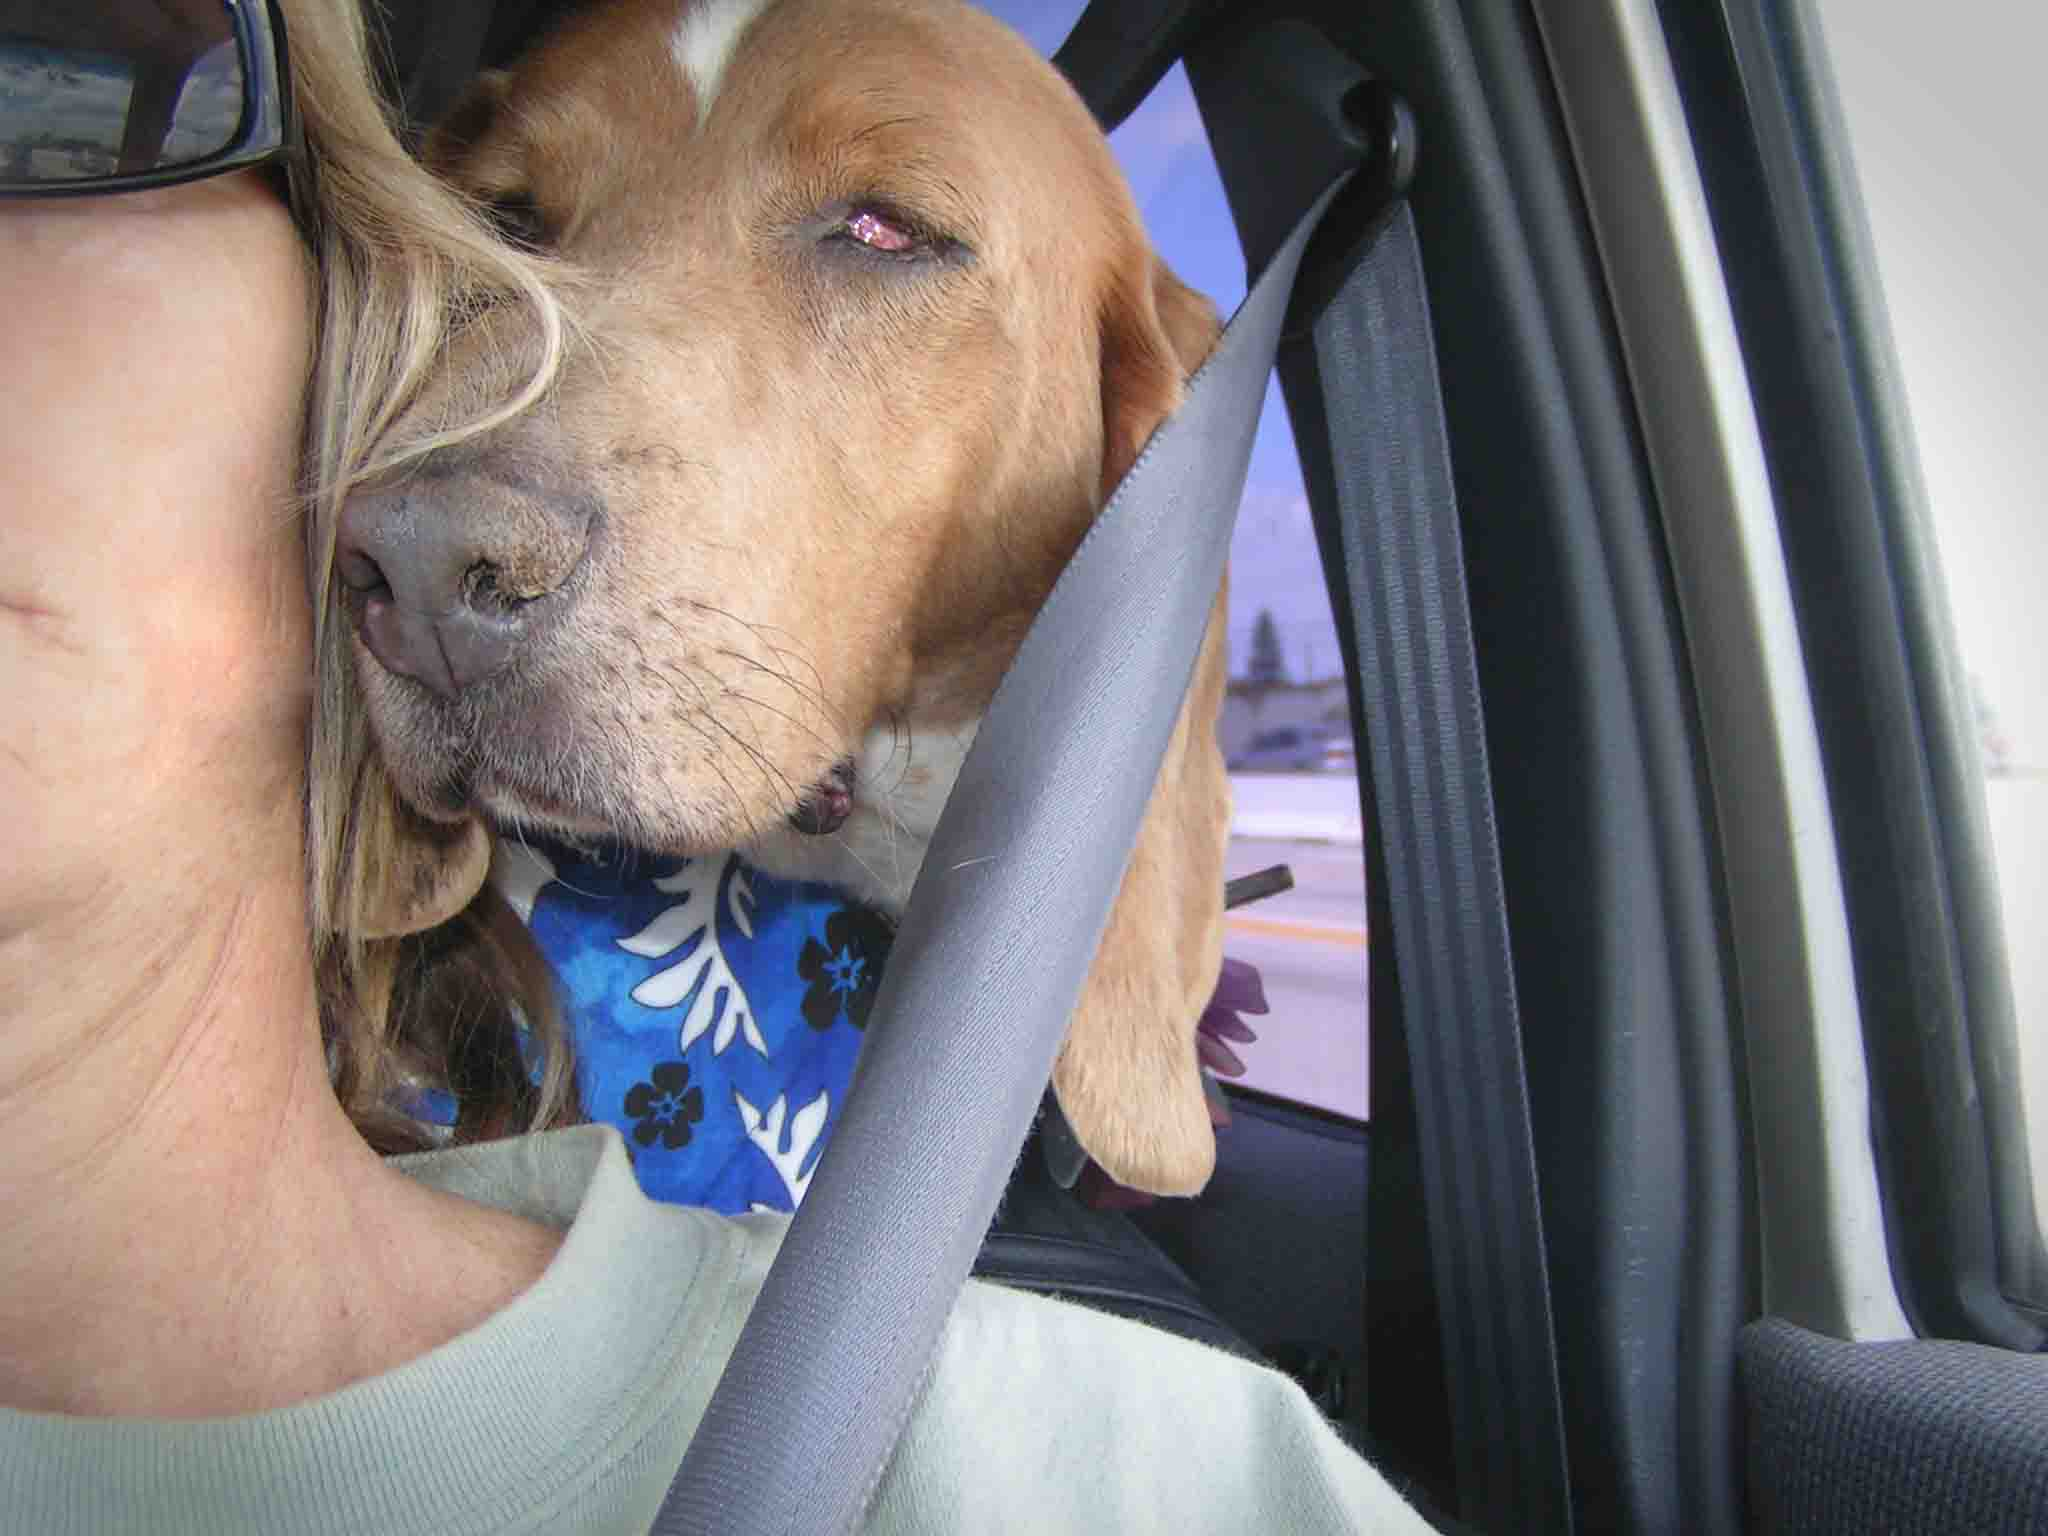 Dude in our first hour together - on the road home from adoption. His first name was Yardley.   He came with eye problems.  Photo (c) Barb Ayers, DogDiary.org